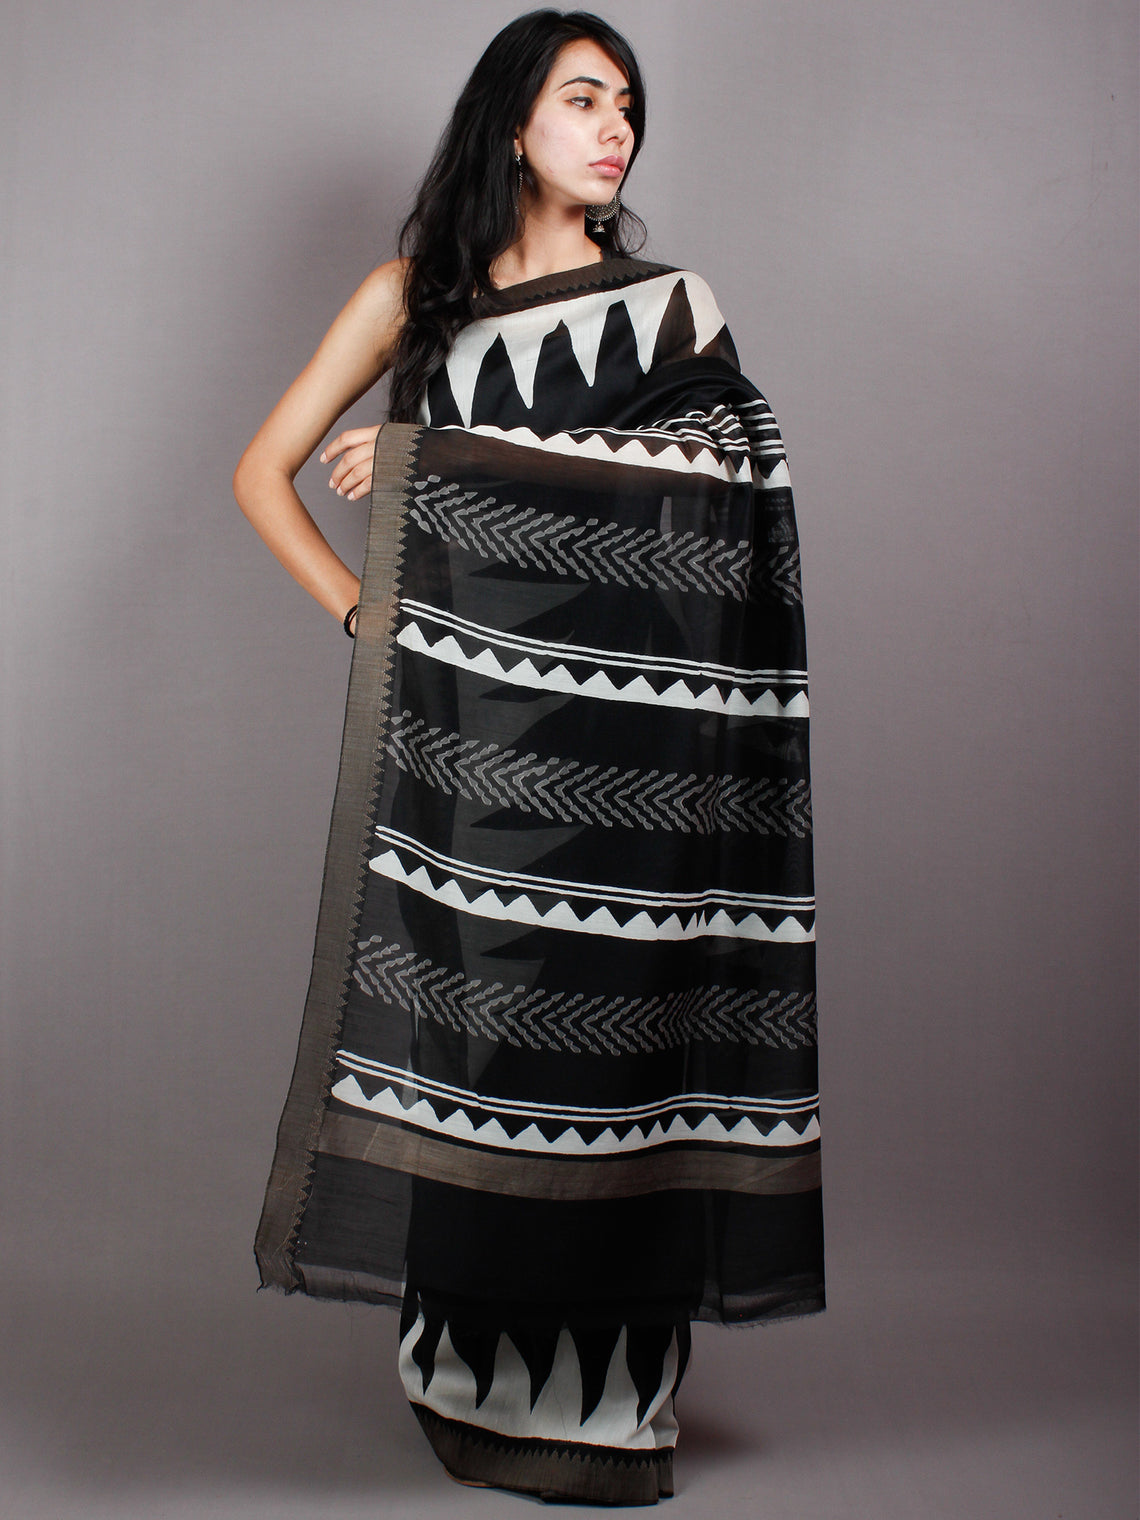 Black White Hand Block Printed in Natural Vegetable Colors Chanderi Saree With Geecha Border - S03170506